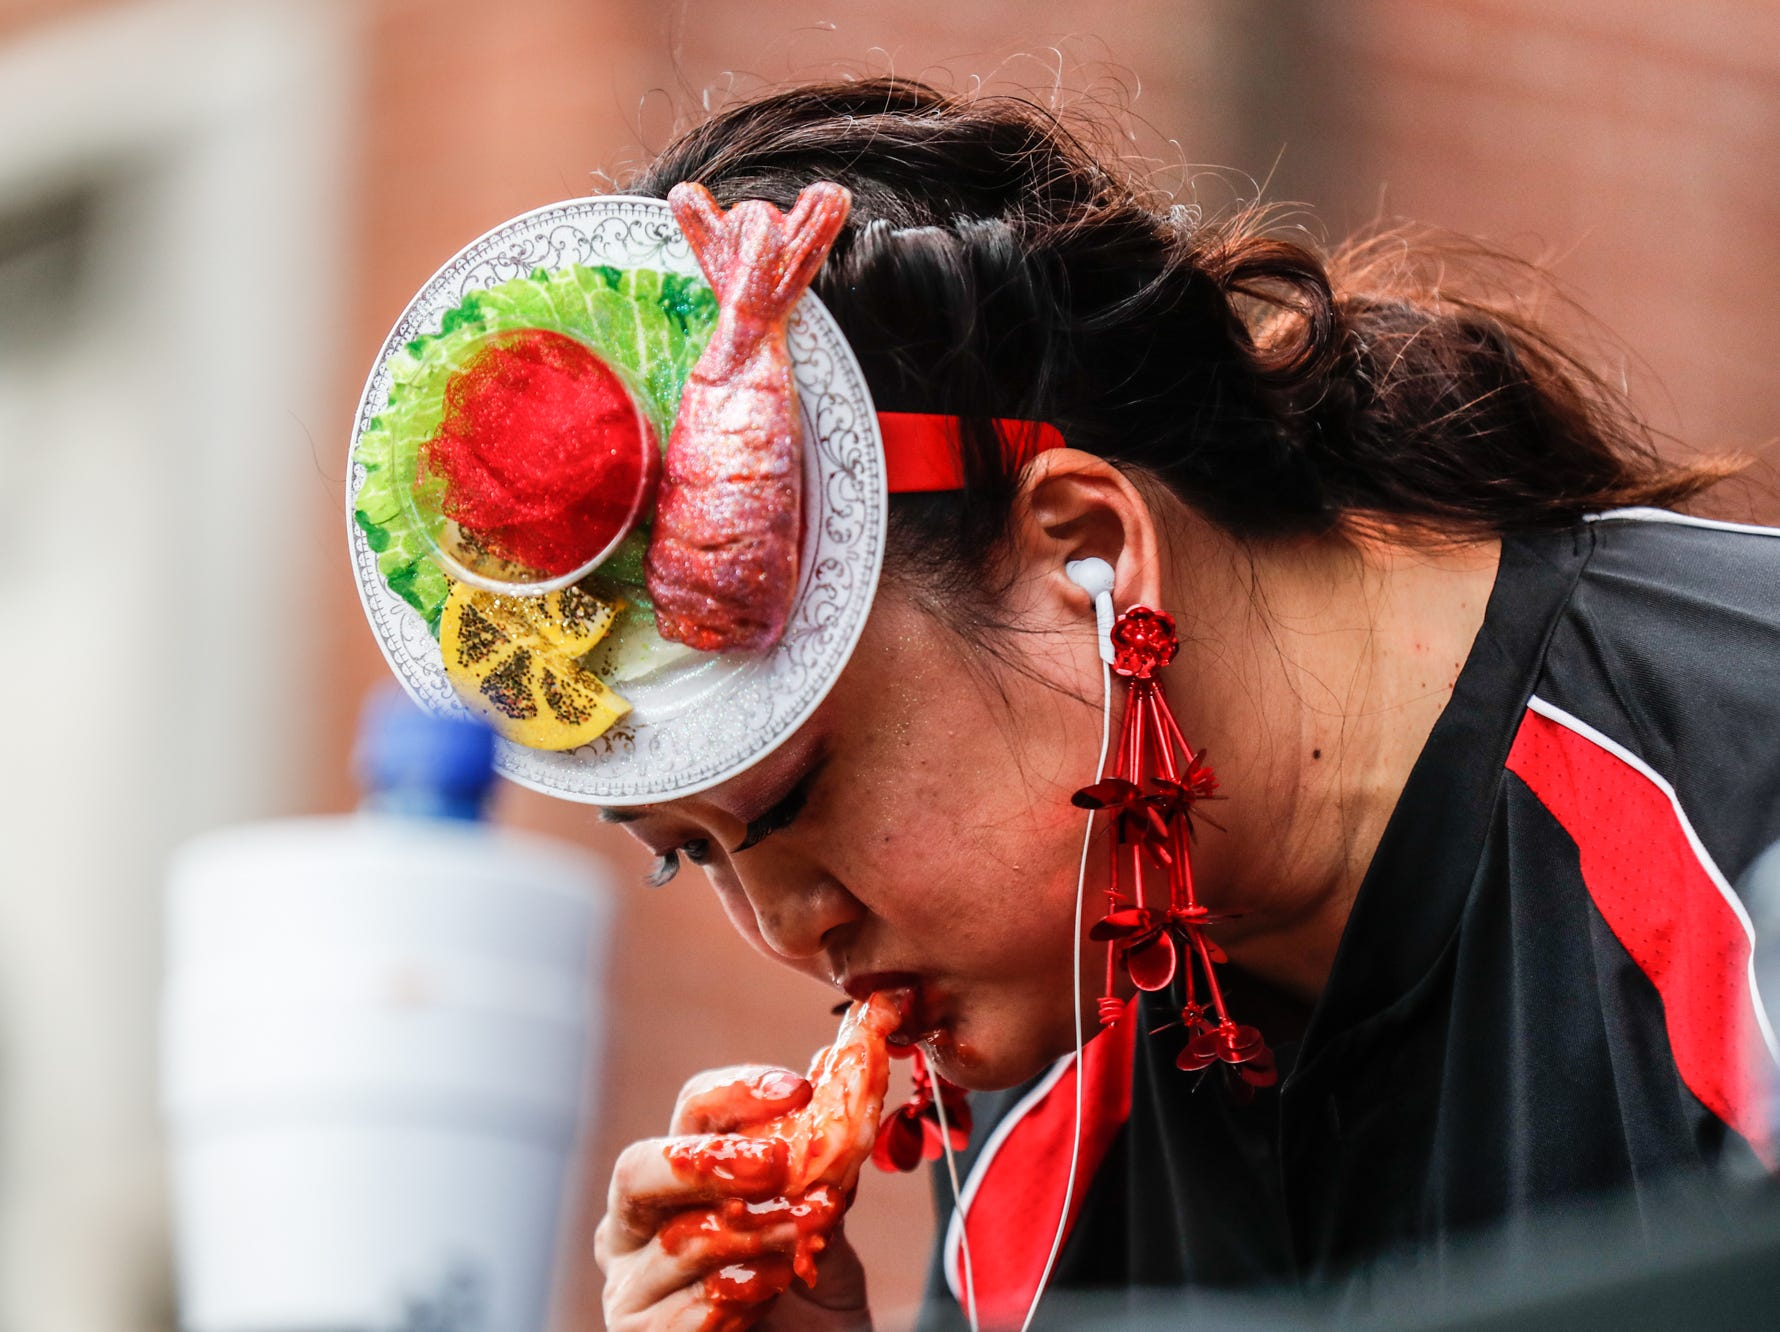 Major League Eater, Mary Bowers competes in the sixth annual World Famous St. Elmo Shrimp Cocktail Eating Championship, held during the Meijer Tailgate Party on Georgia St. in Indianapolis on Saturday, Dec. 1, 2018.